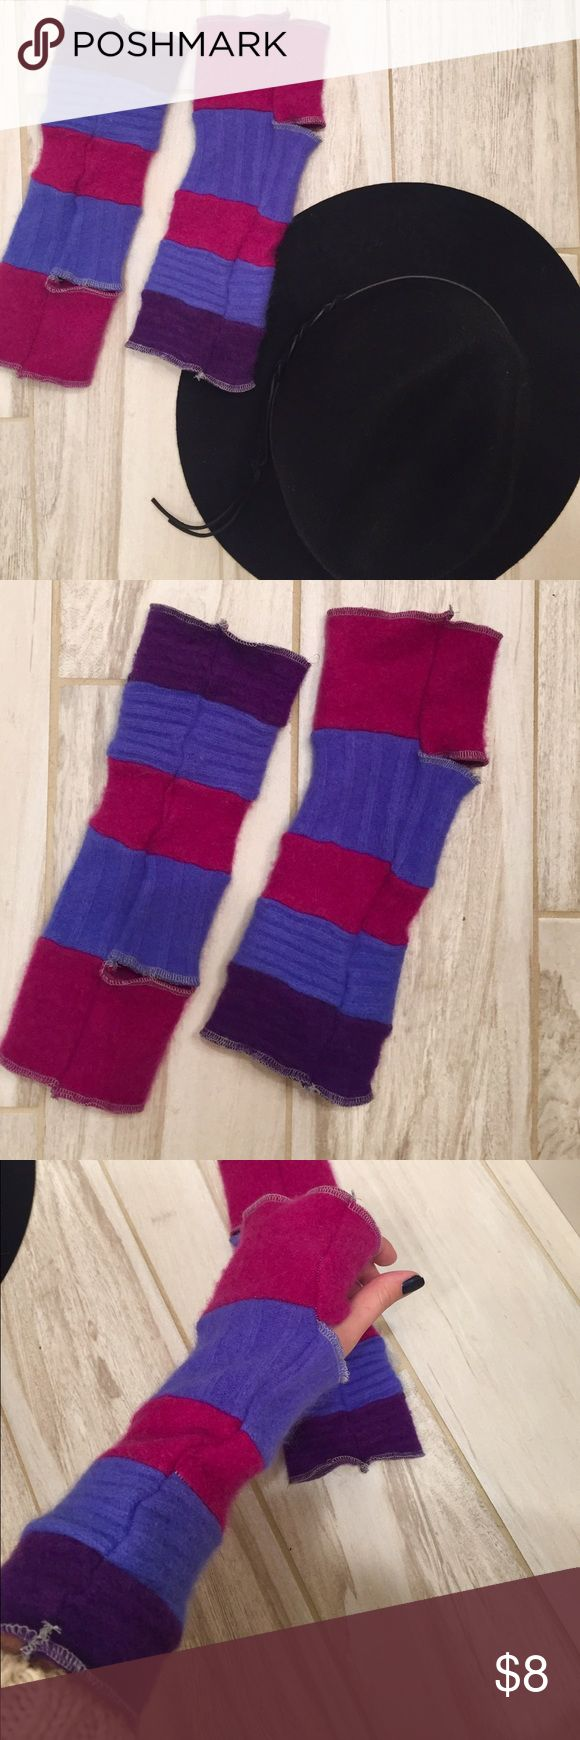 Winter Arm Sleeves Never worn. Pink and purple arm sleeves with thumb holes. Accessories Gloves & Mittens